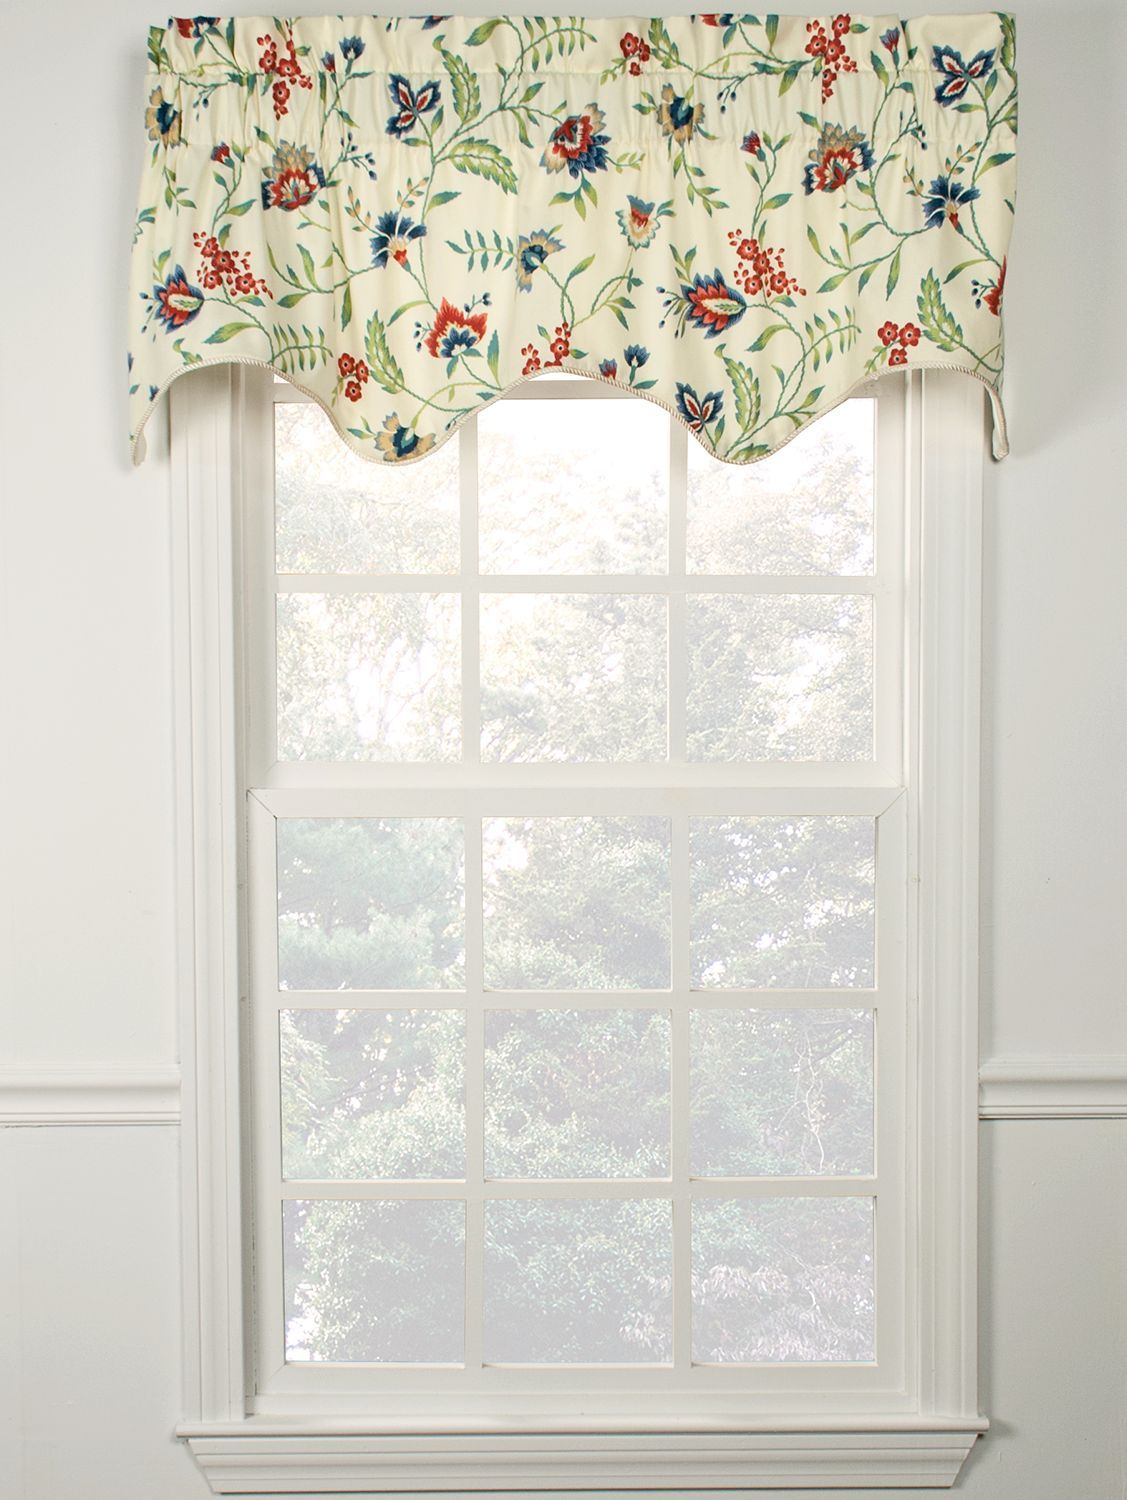 Pin by MaryBeth Slover on Condo Window Treatments   Curtains ...